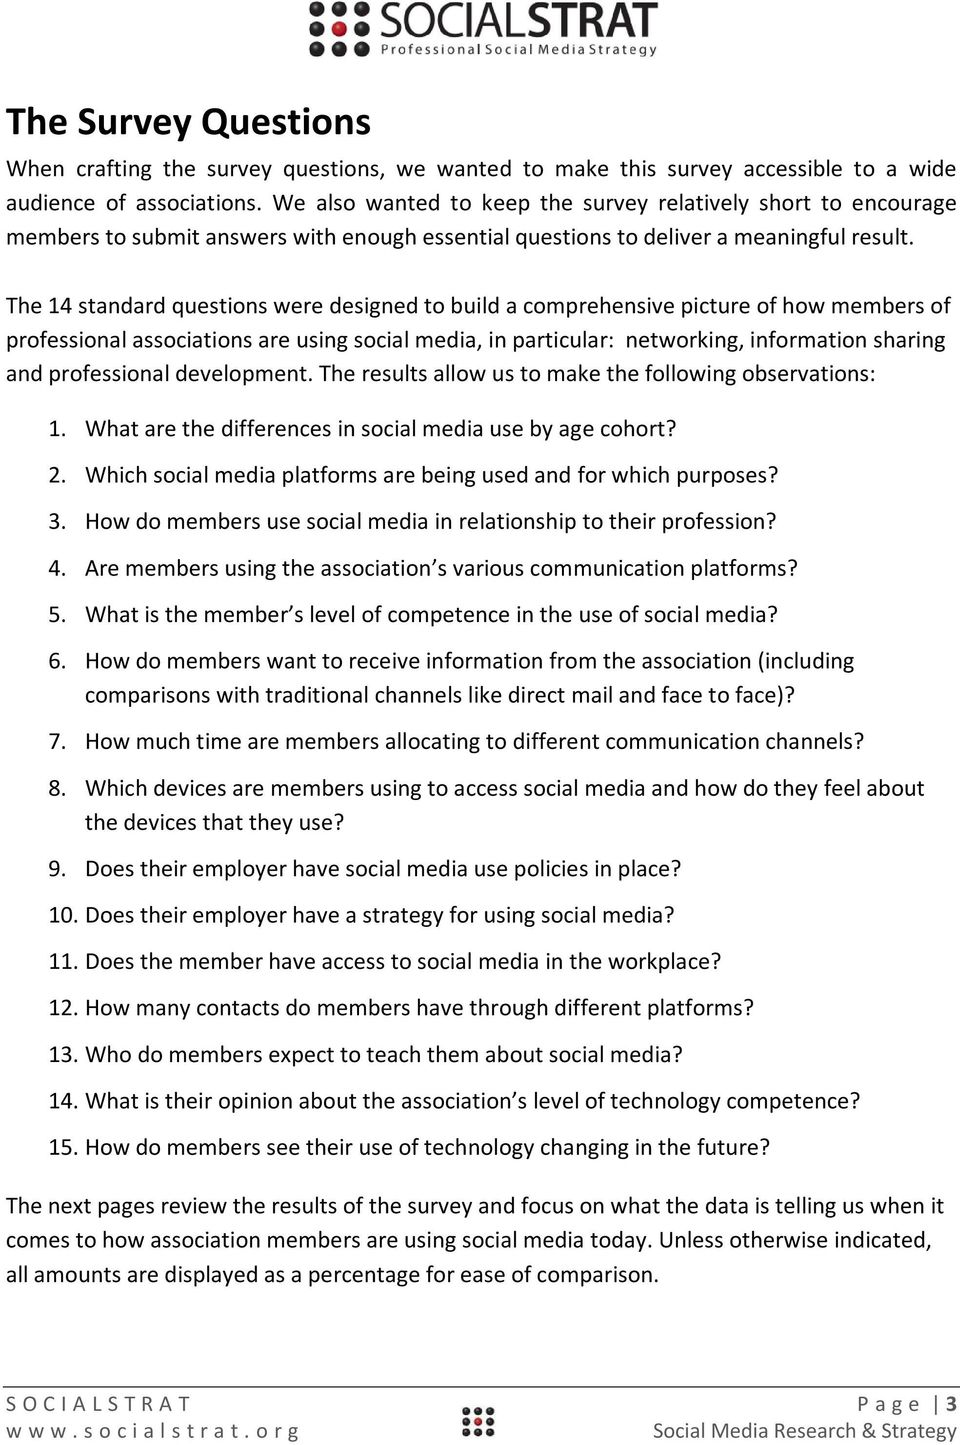 The 14 standard questions were designed to build a comprehensive picture of how members of professional associations are using social media, in particular: networking, information sharing and